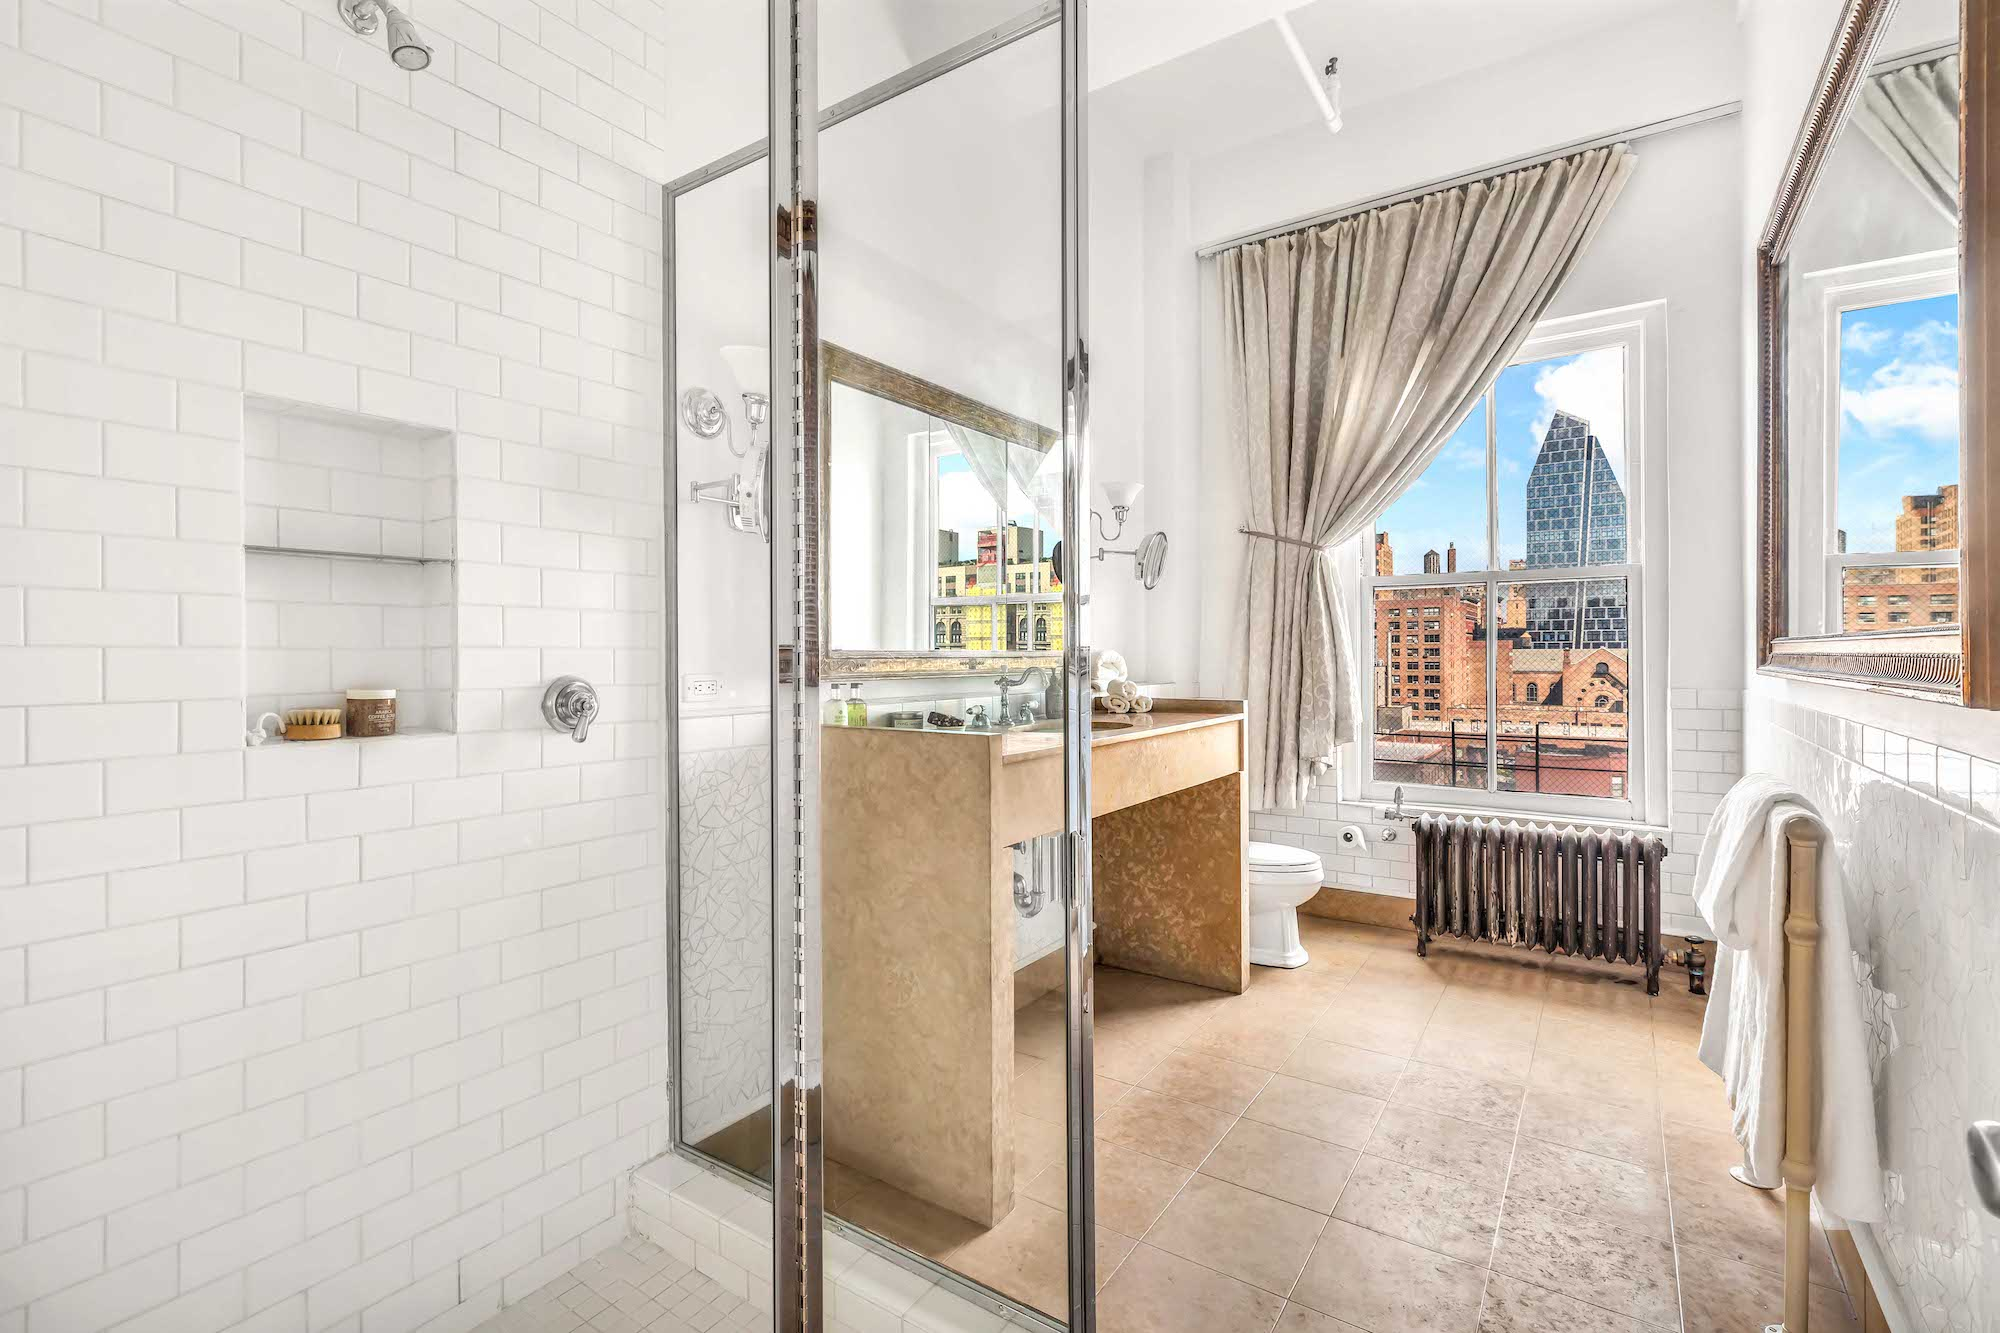 Il bagno / Eitan Gamliely for Sotheby's International Realty